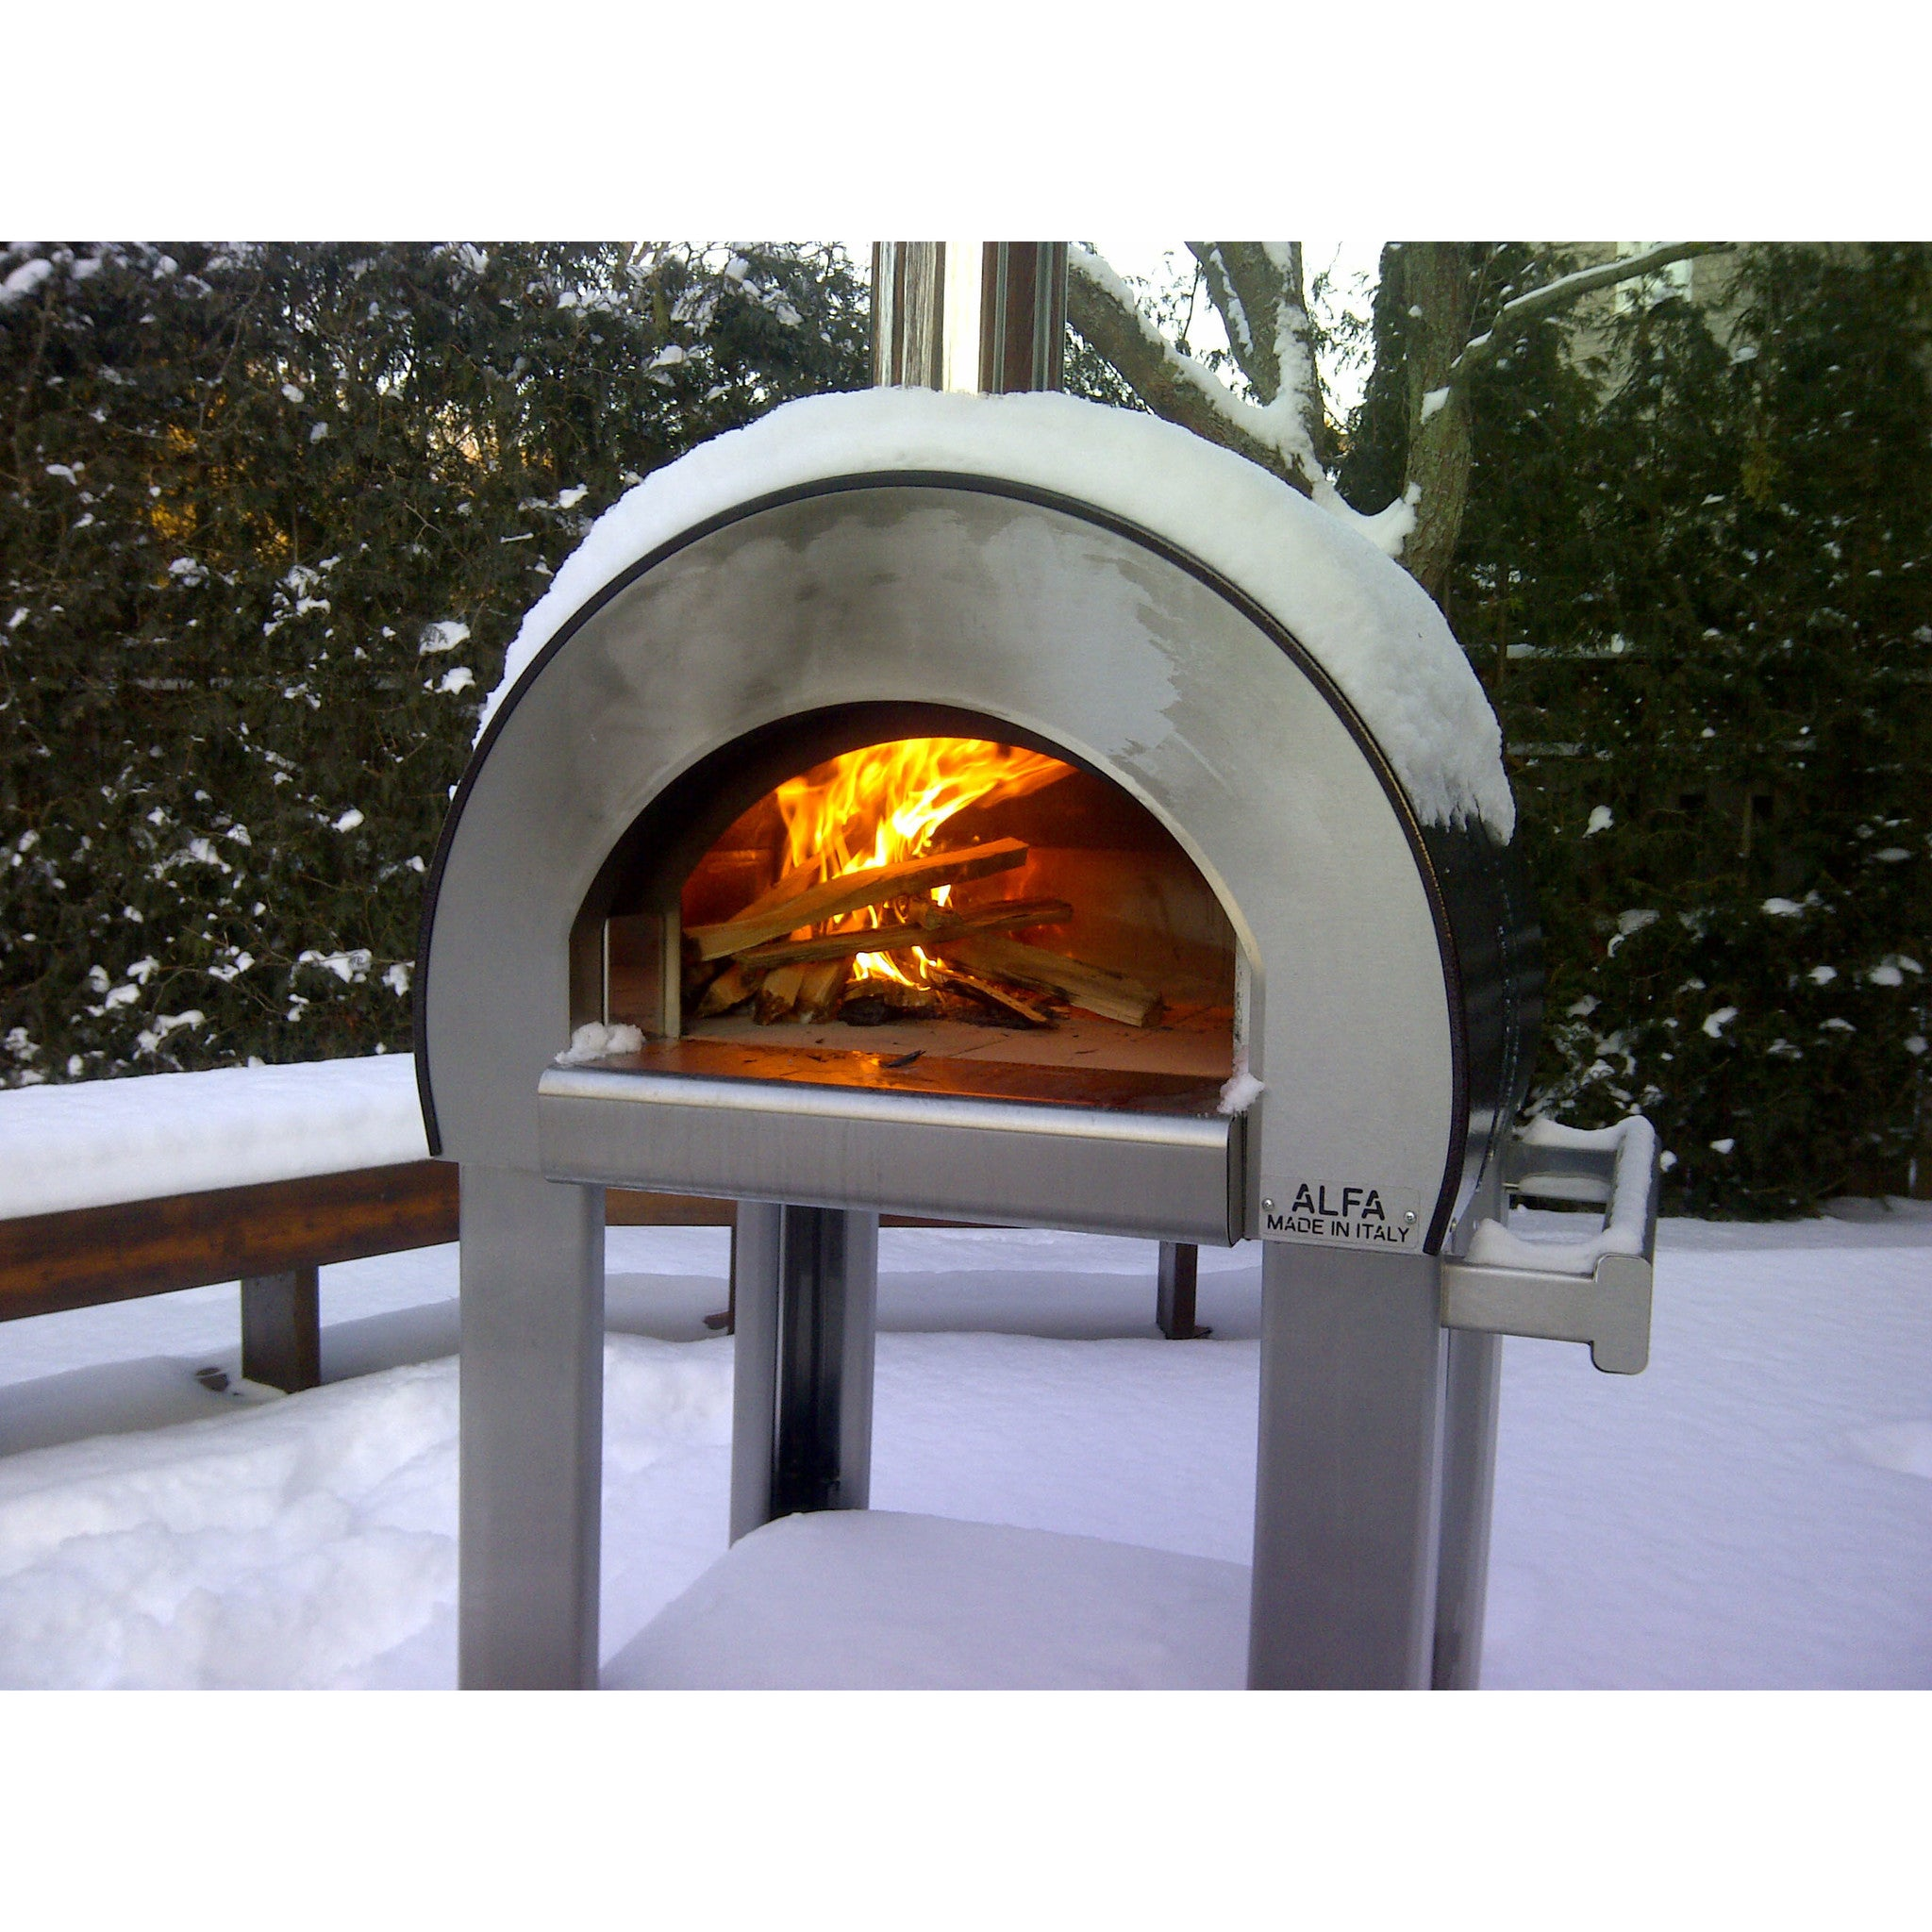 backyard pizza oven the mangiafuoco wood oven garden design with